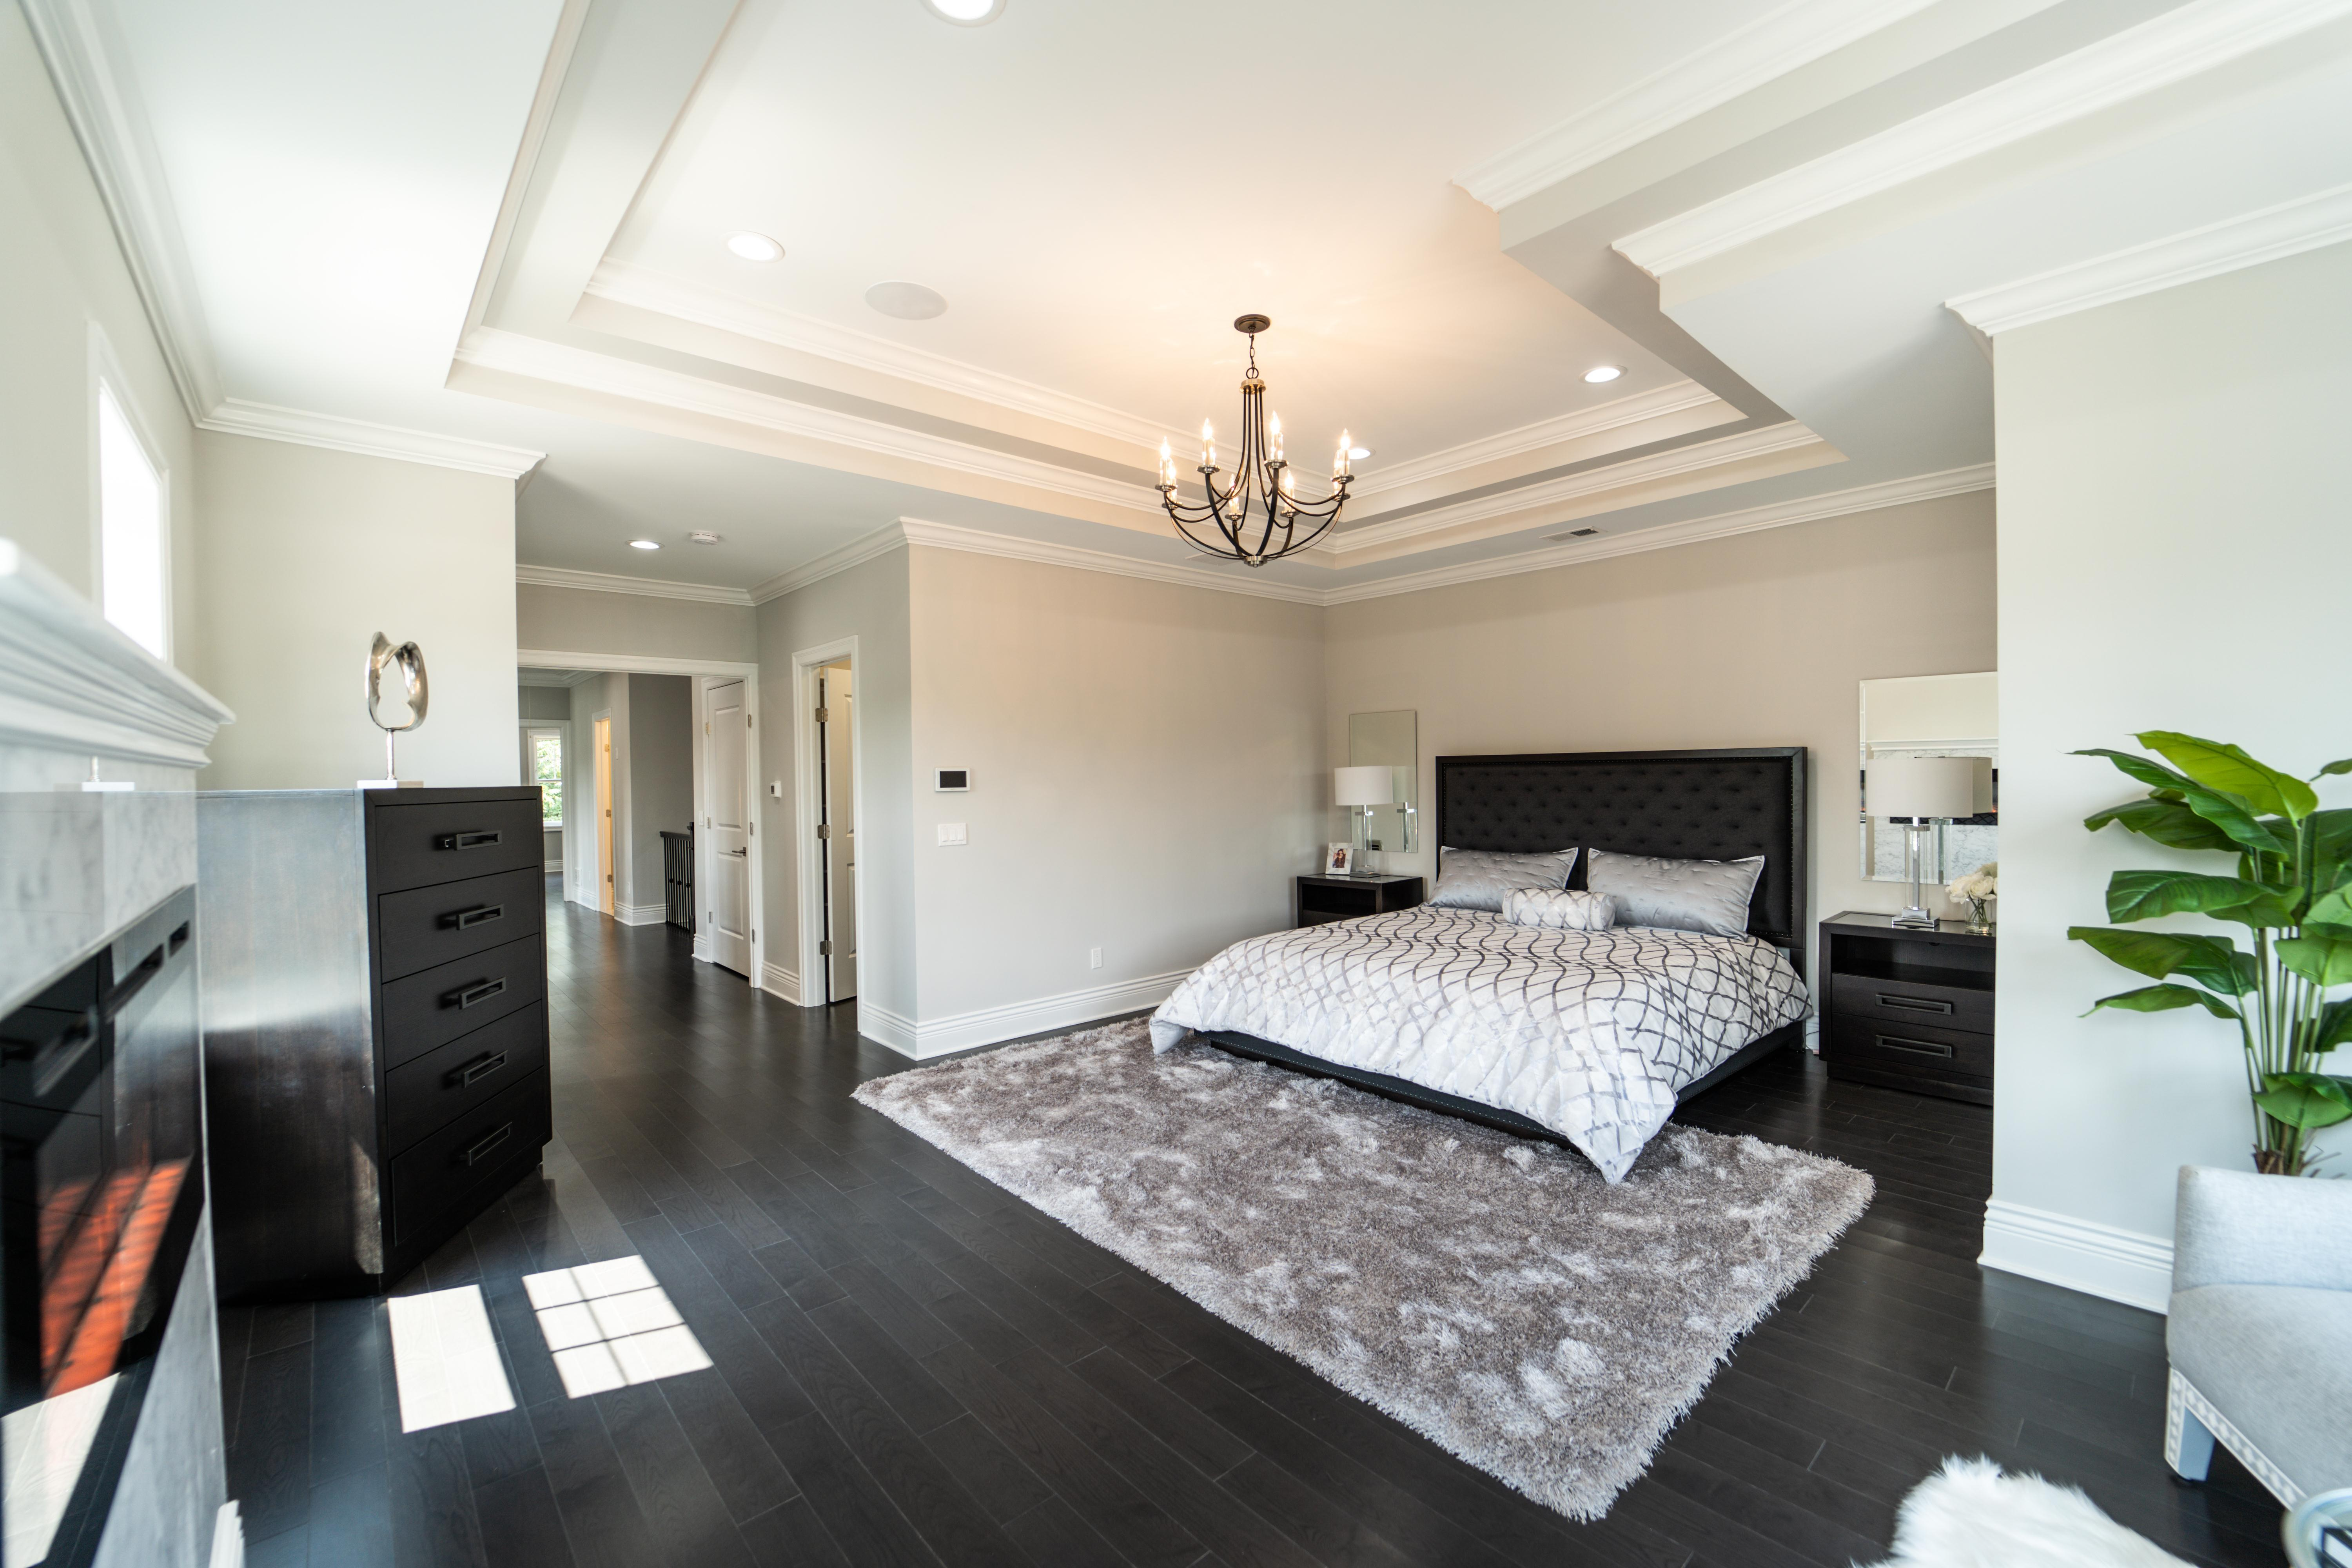 Bedroom featured in the Villa Vizcaya By Paul Anthony Agency in Somerset County, NJ